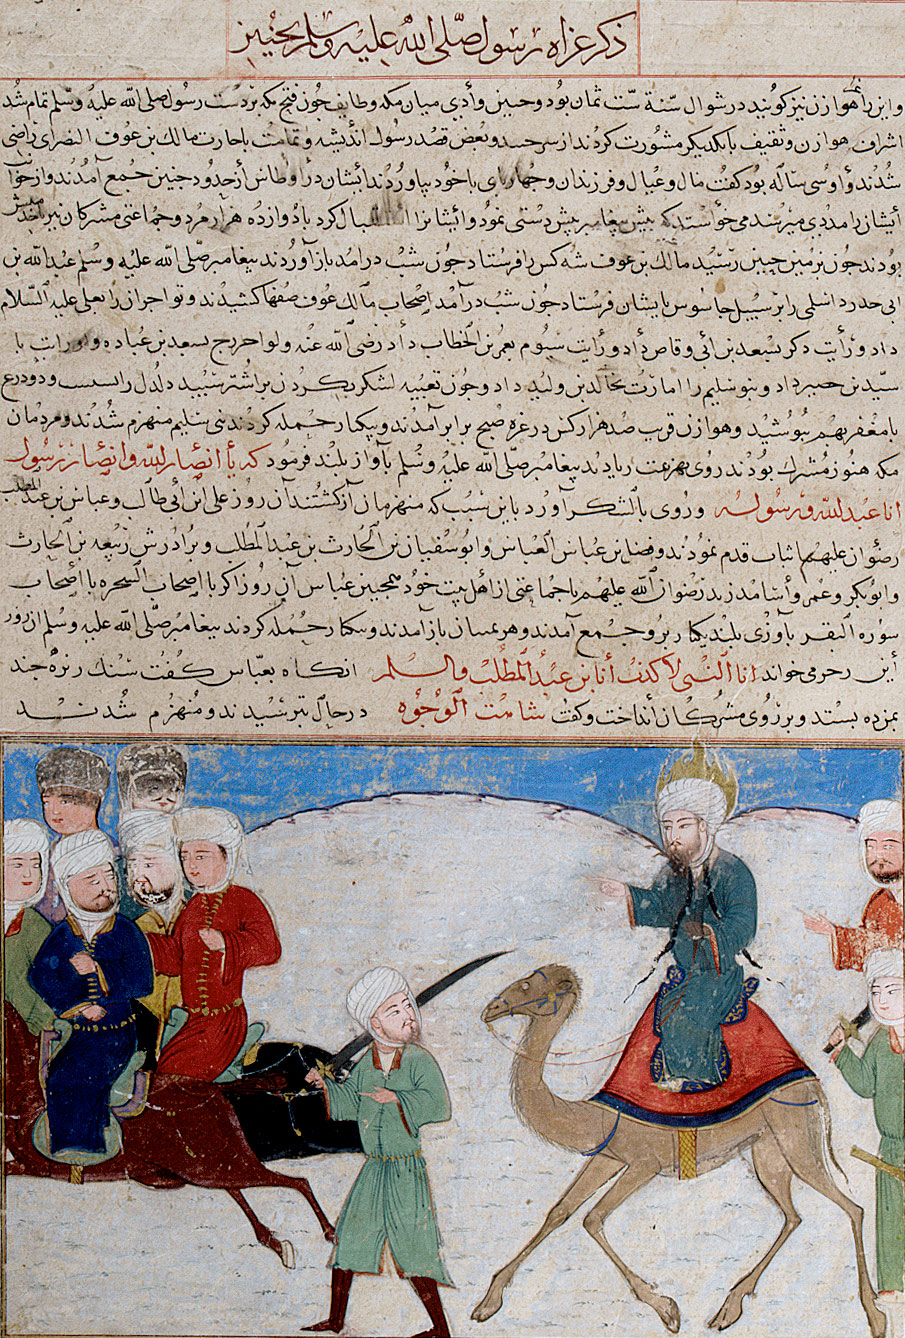 Journey of the Prophet Muhammad, Folio from the Majma al-Tavarikh (Compendium of Histories)